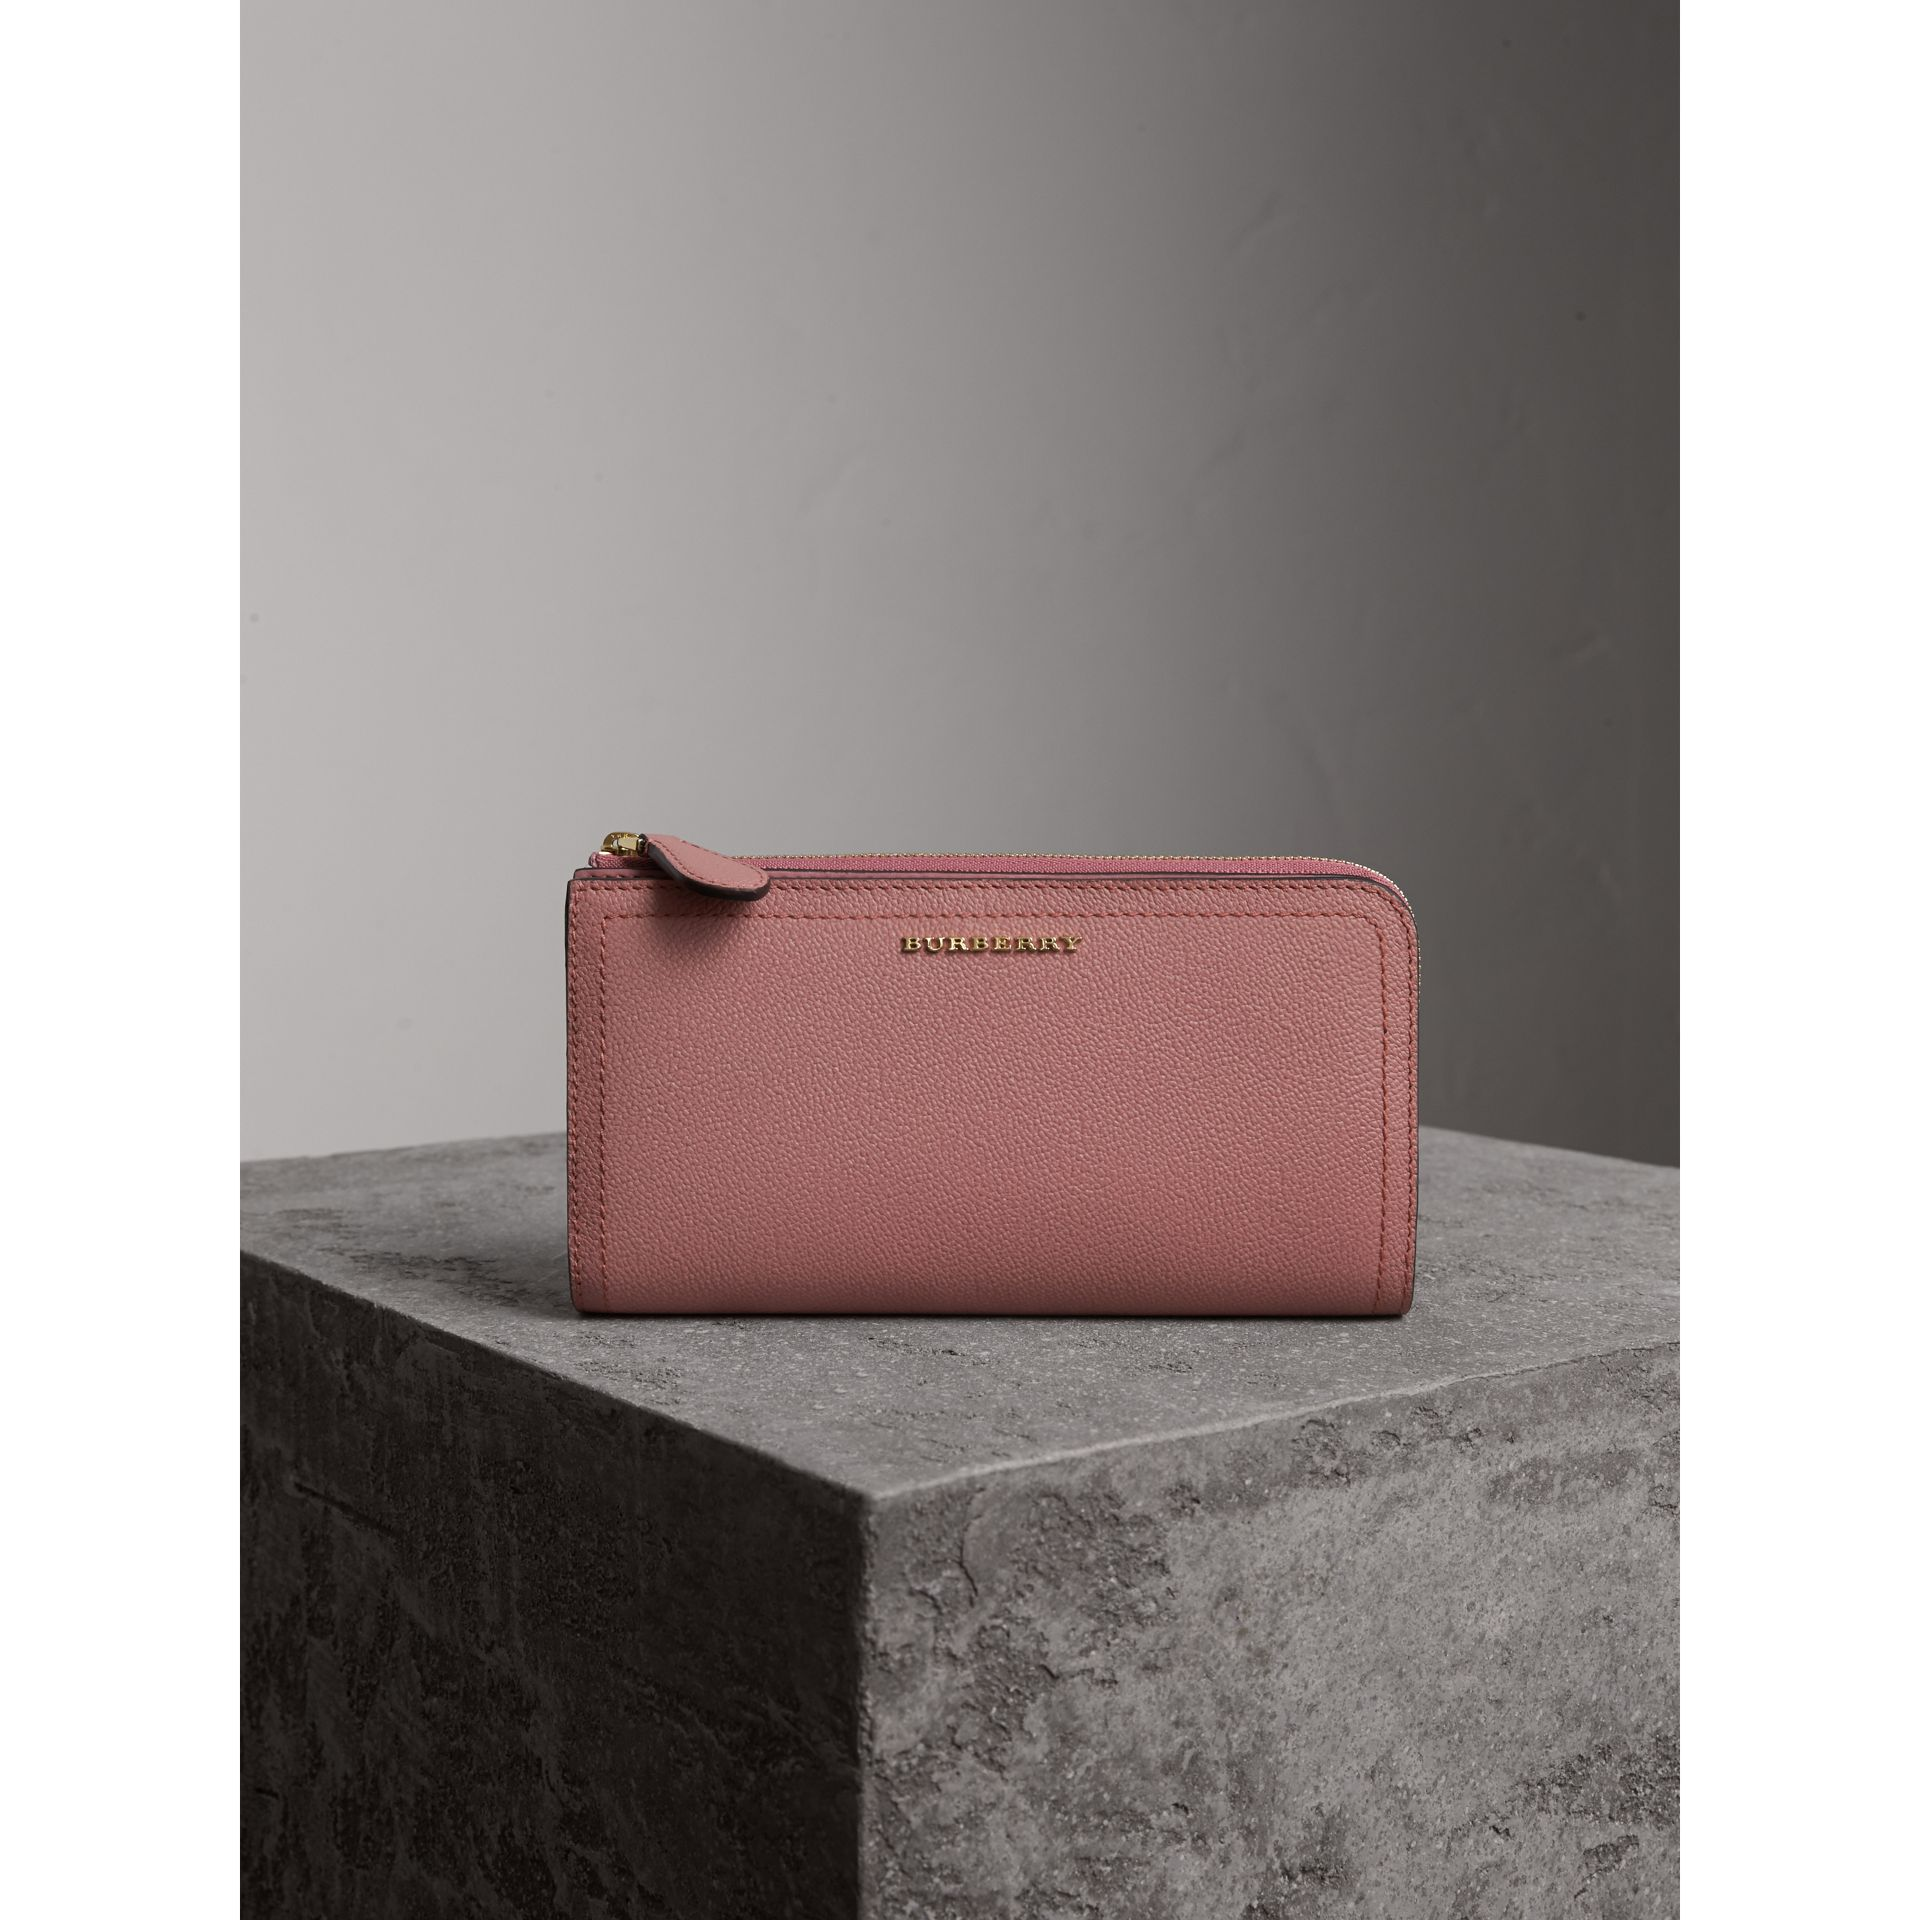 Grainy Leather Ziparound Wallet in Dusty Pink - Women | Burberry - gallery image 6